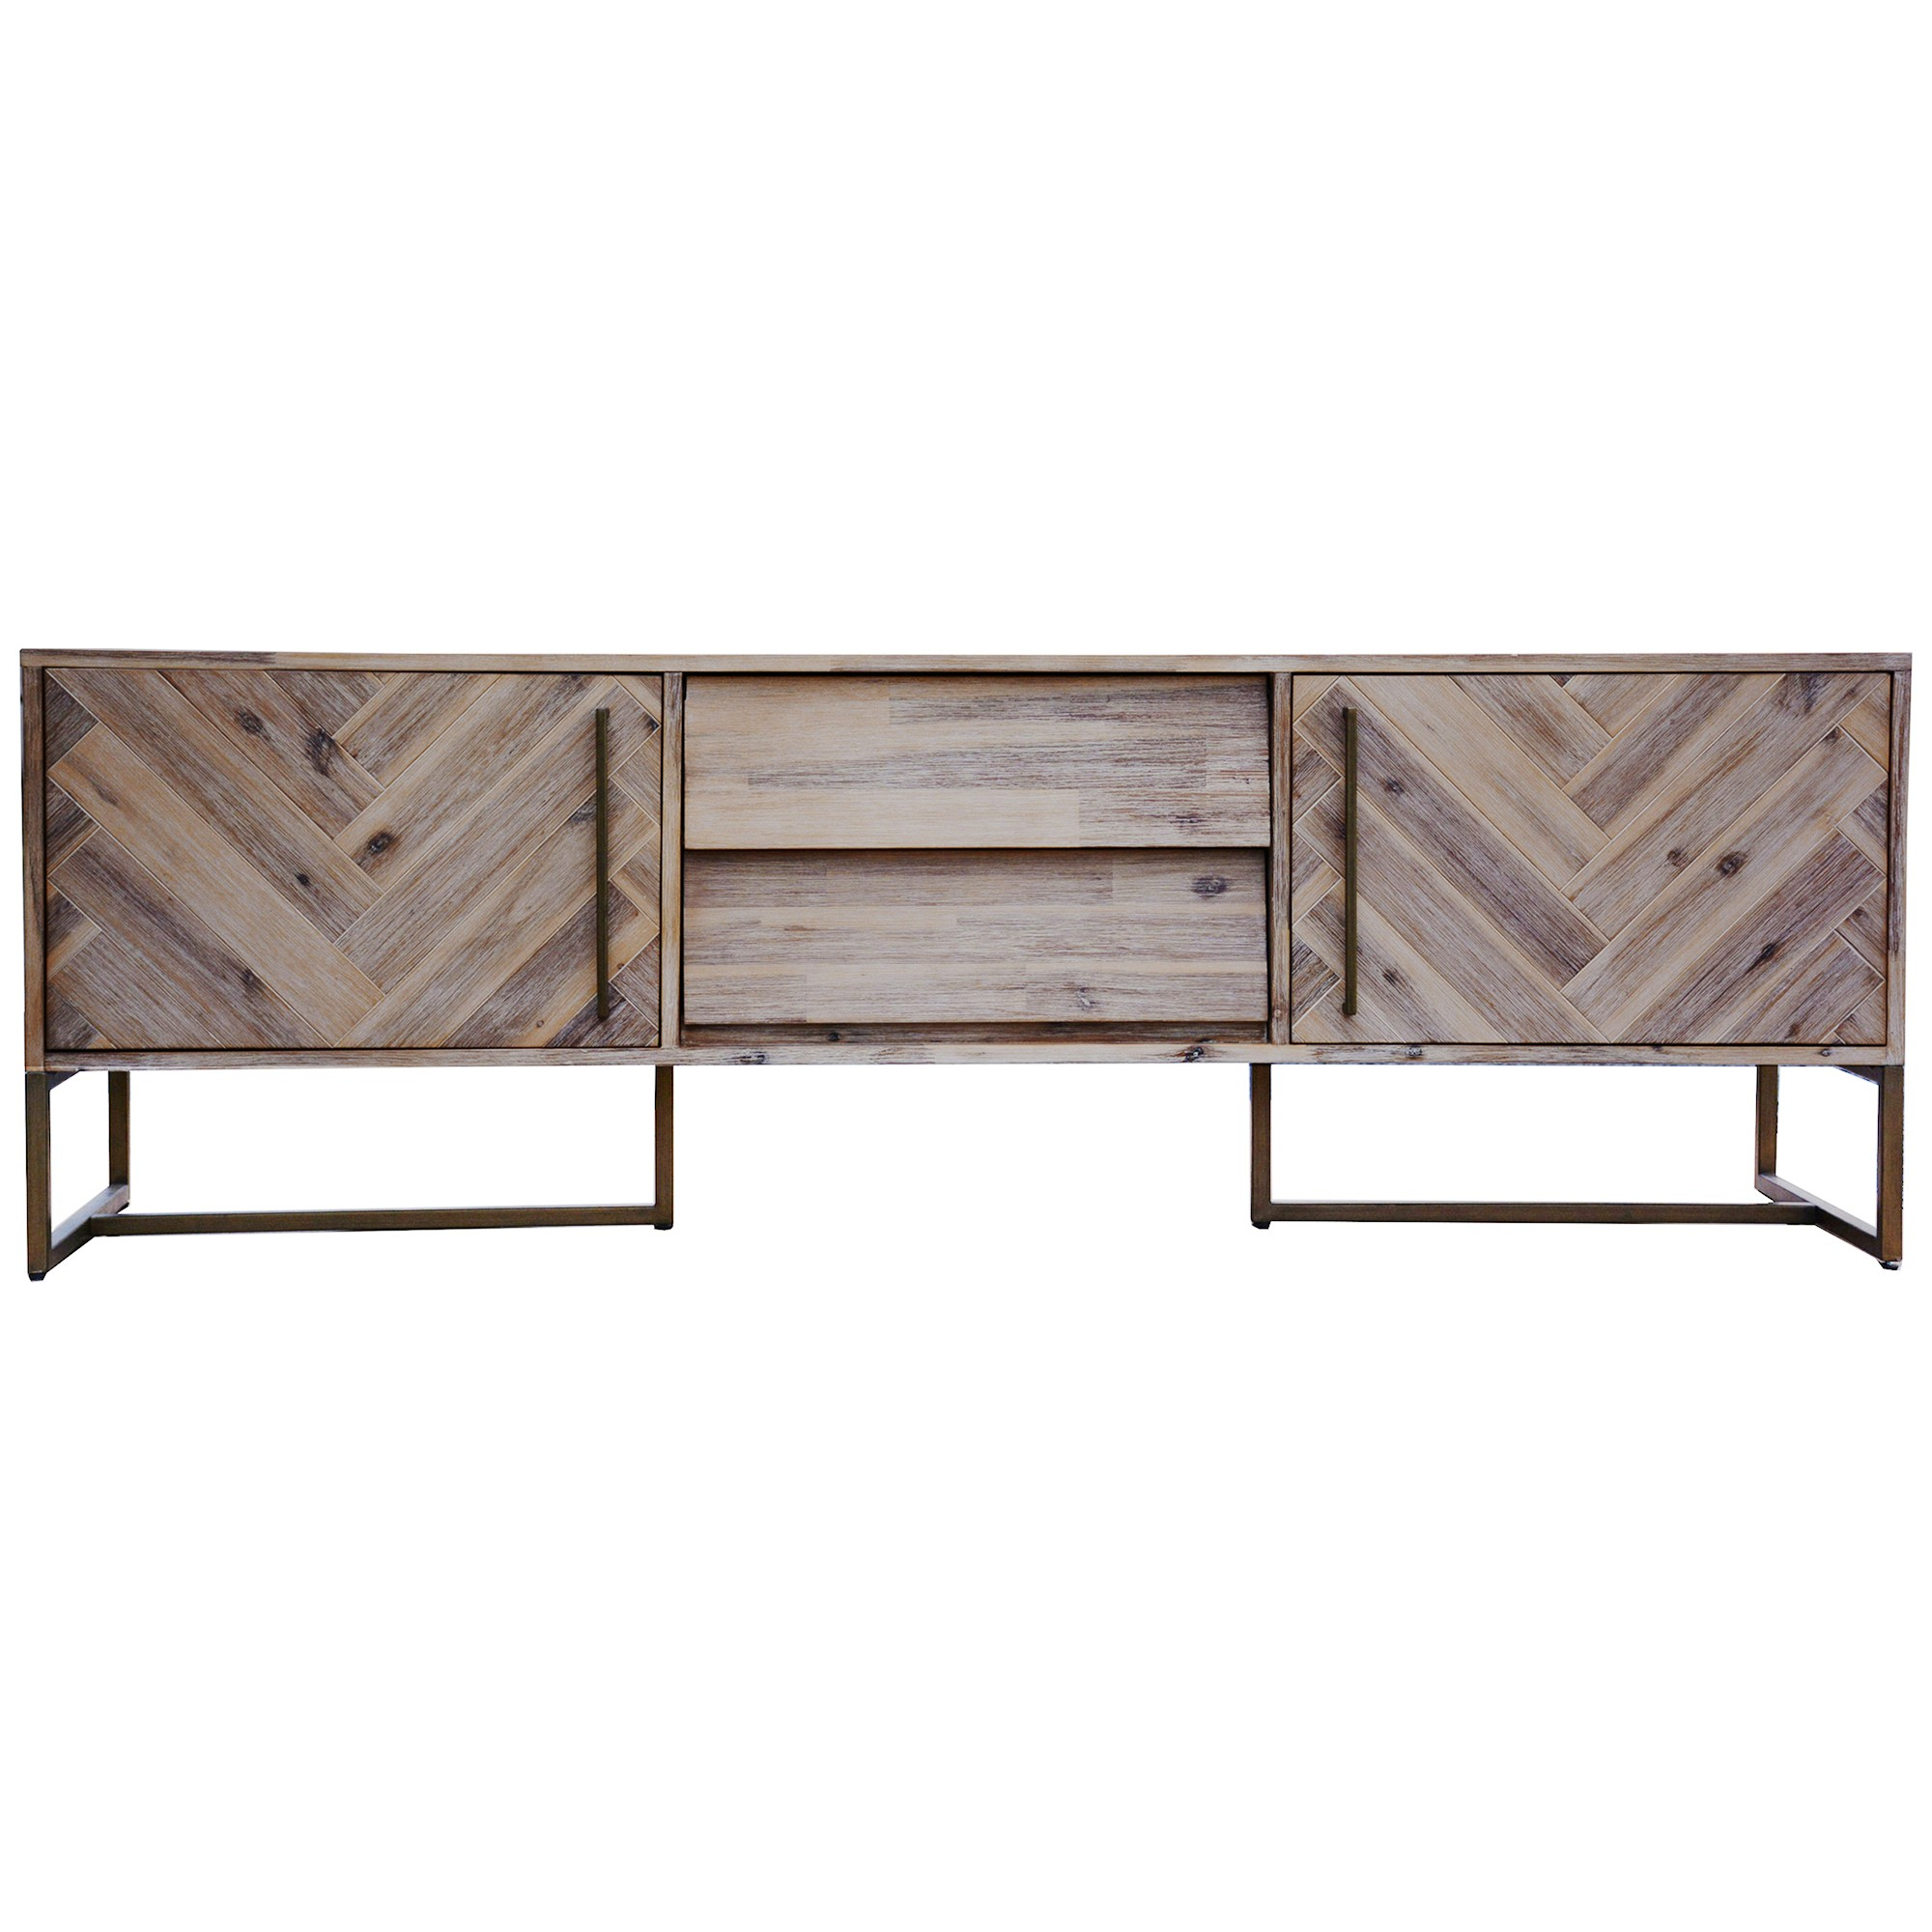 Nona Acacia Timber & Metal 2 Door 1 Drawer TV Unit, 180cm